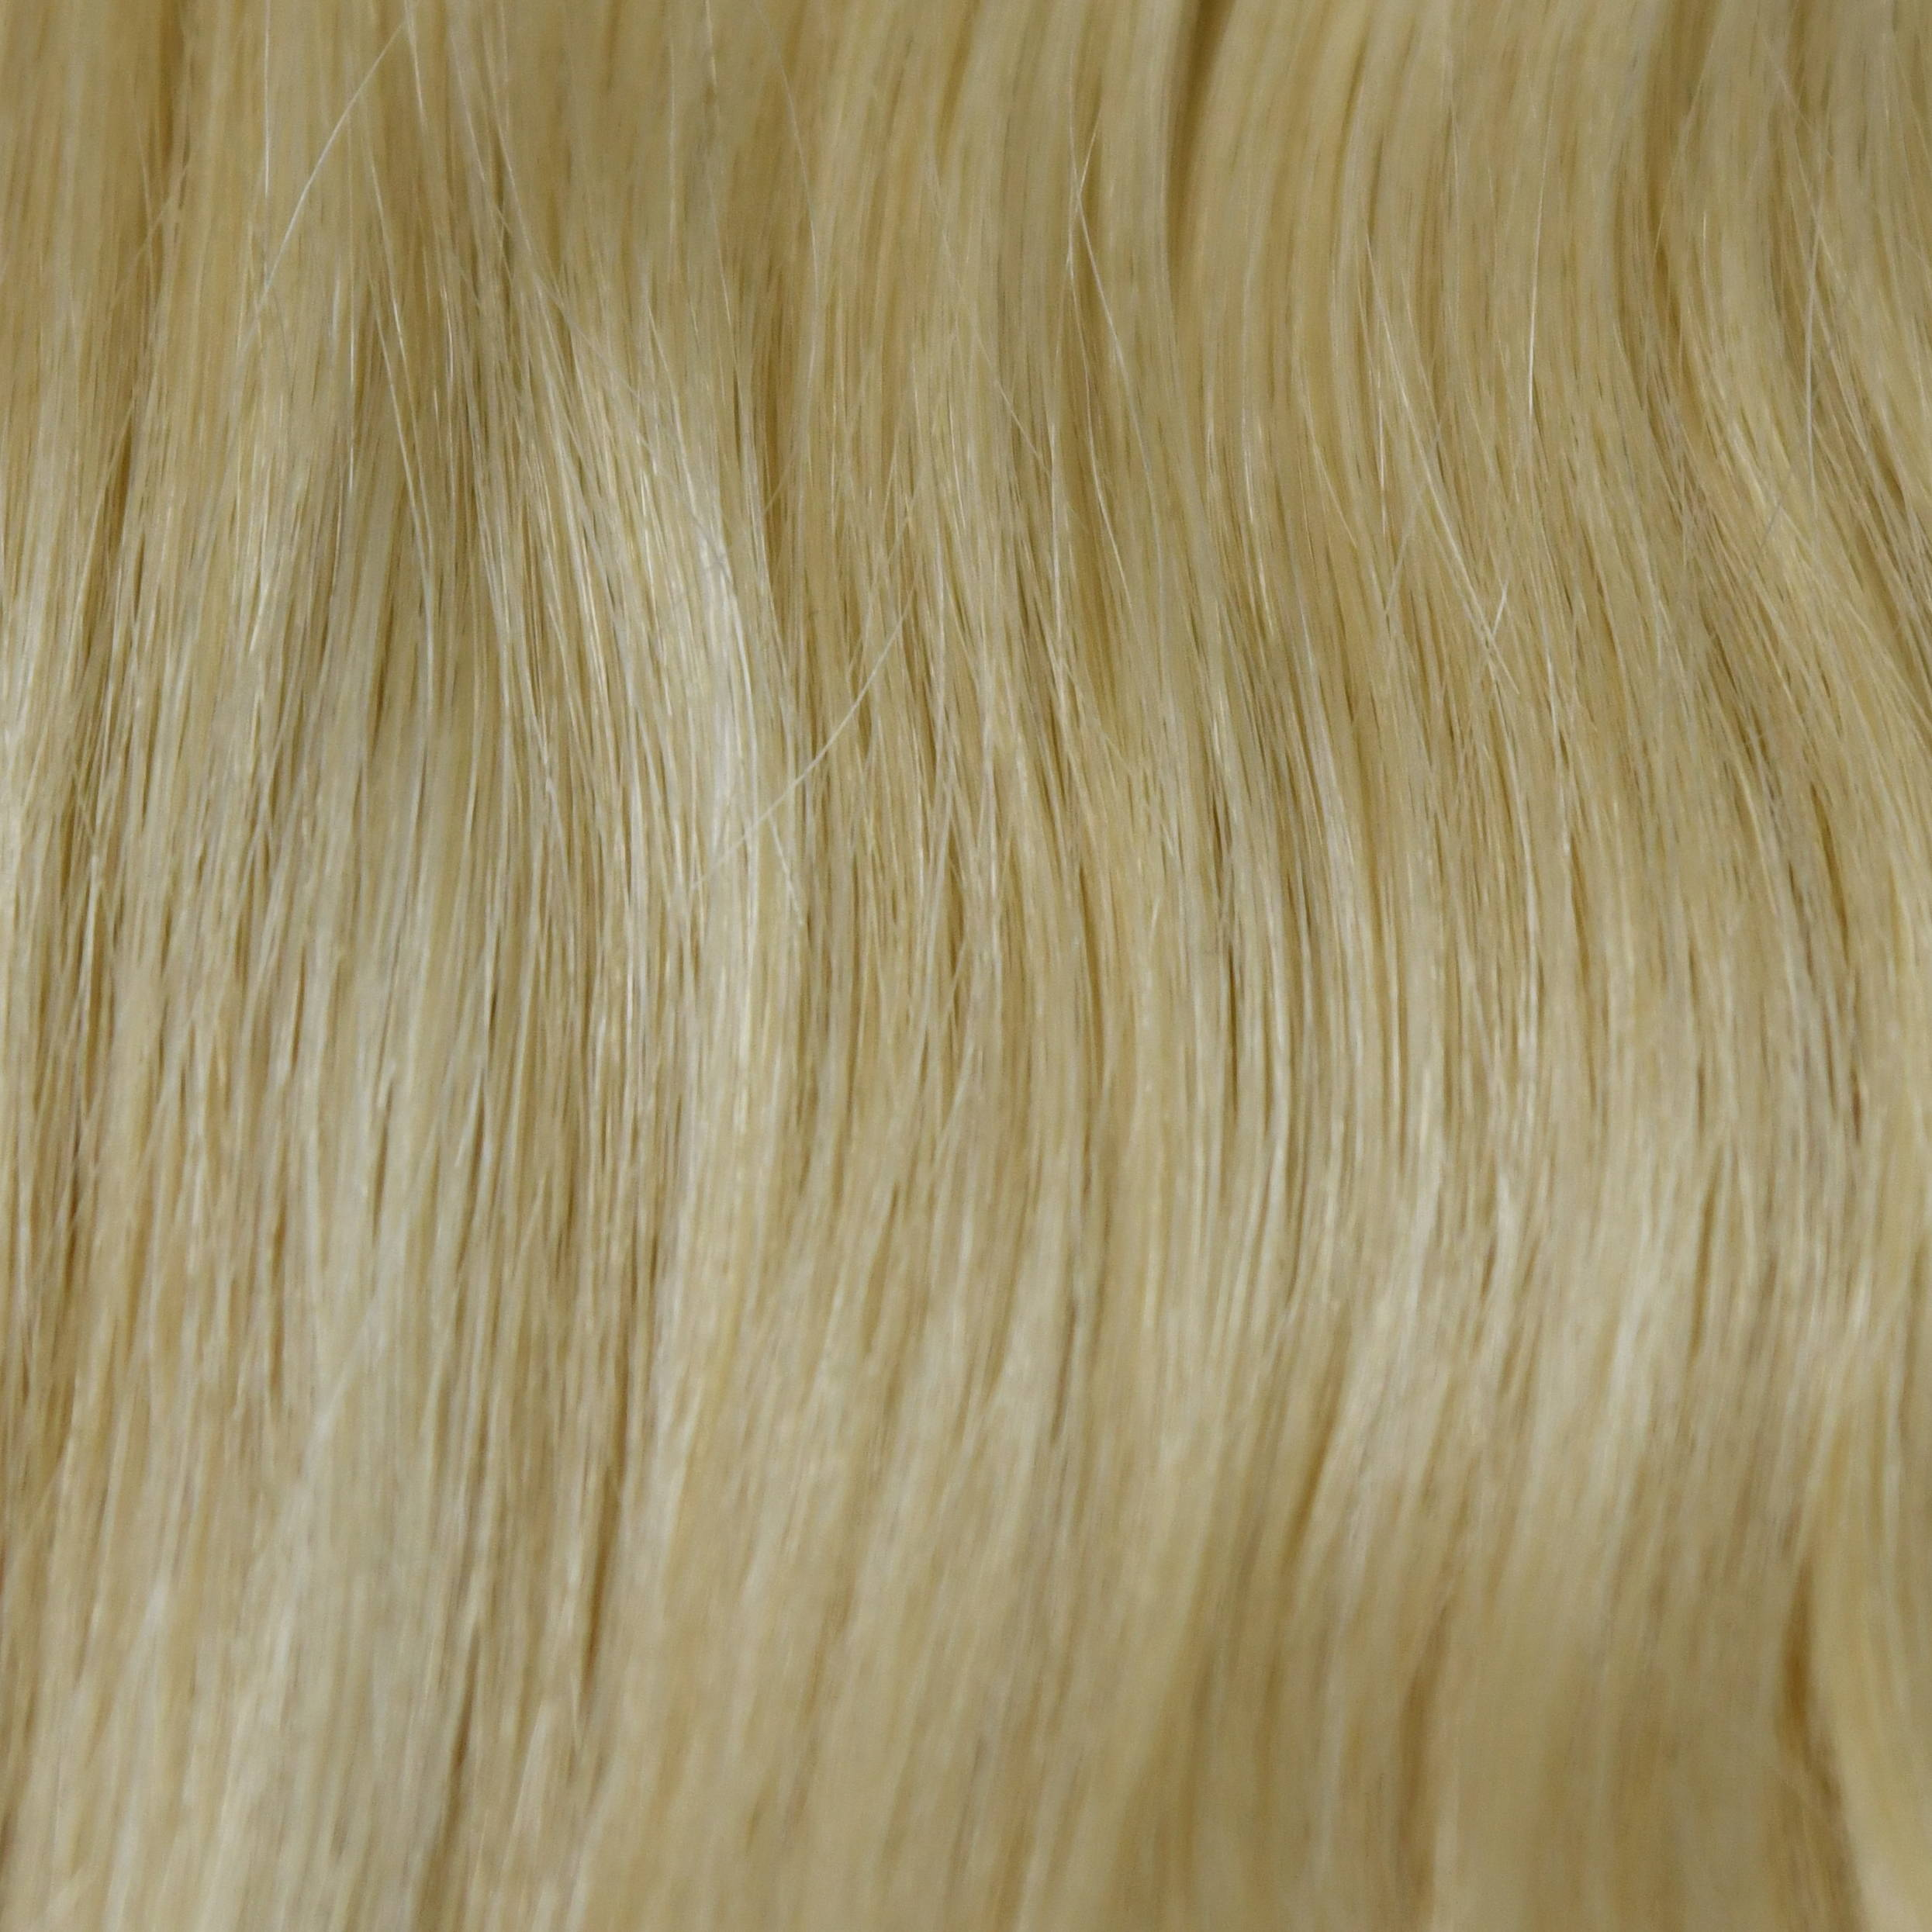 natual Blonde color hair help to choose hair extensions color in hair color chart